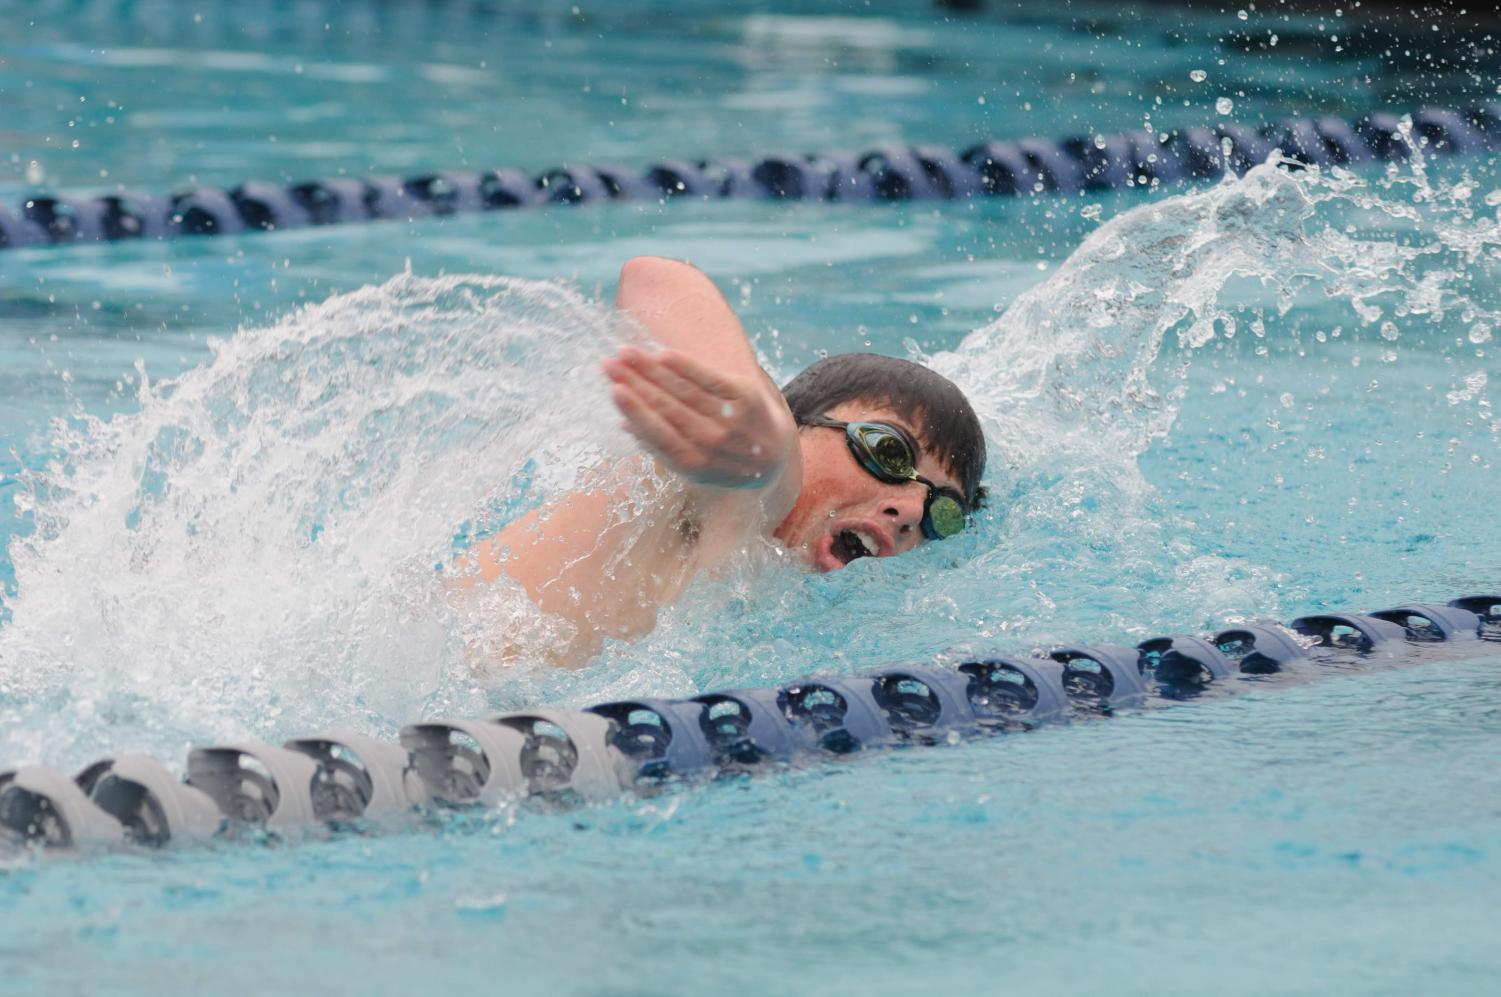 Brandon Rodgers '22 swims with speed down his lane.